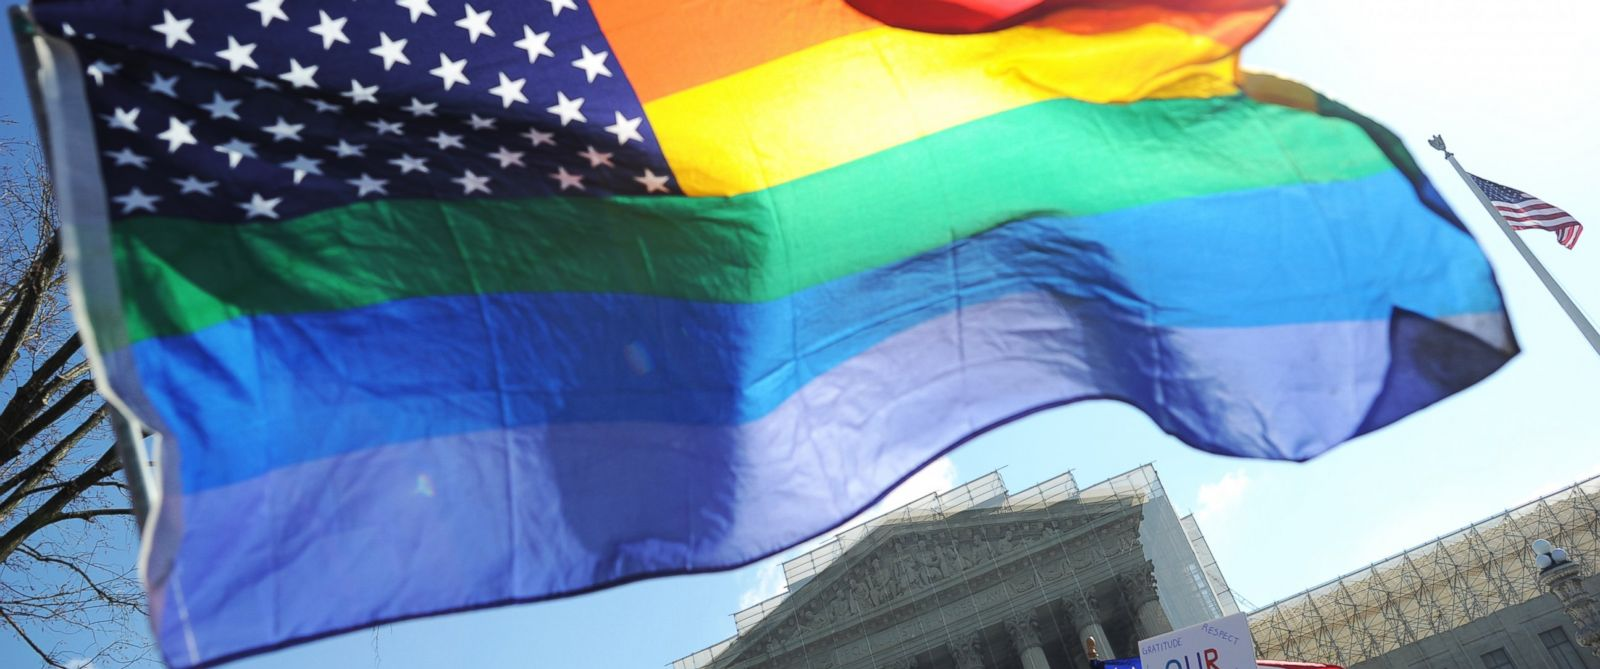 PHOTO: Same-sex marriage supporters wave a rainbow flag in front of the US Supreme Court, March 26, 2013 in Washington.